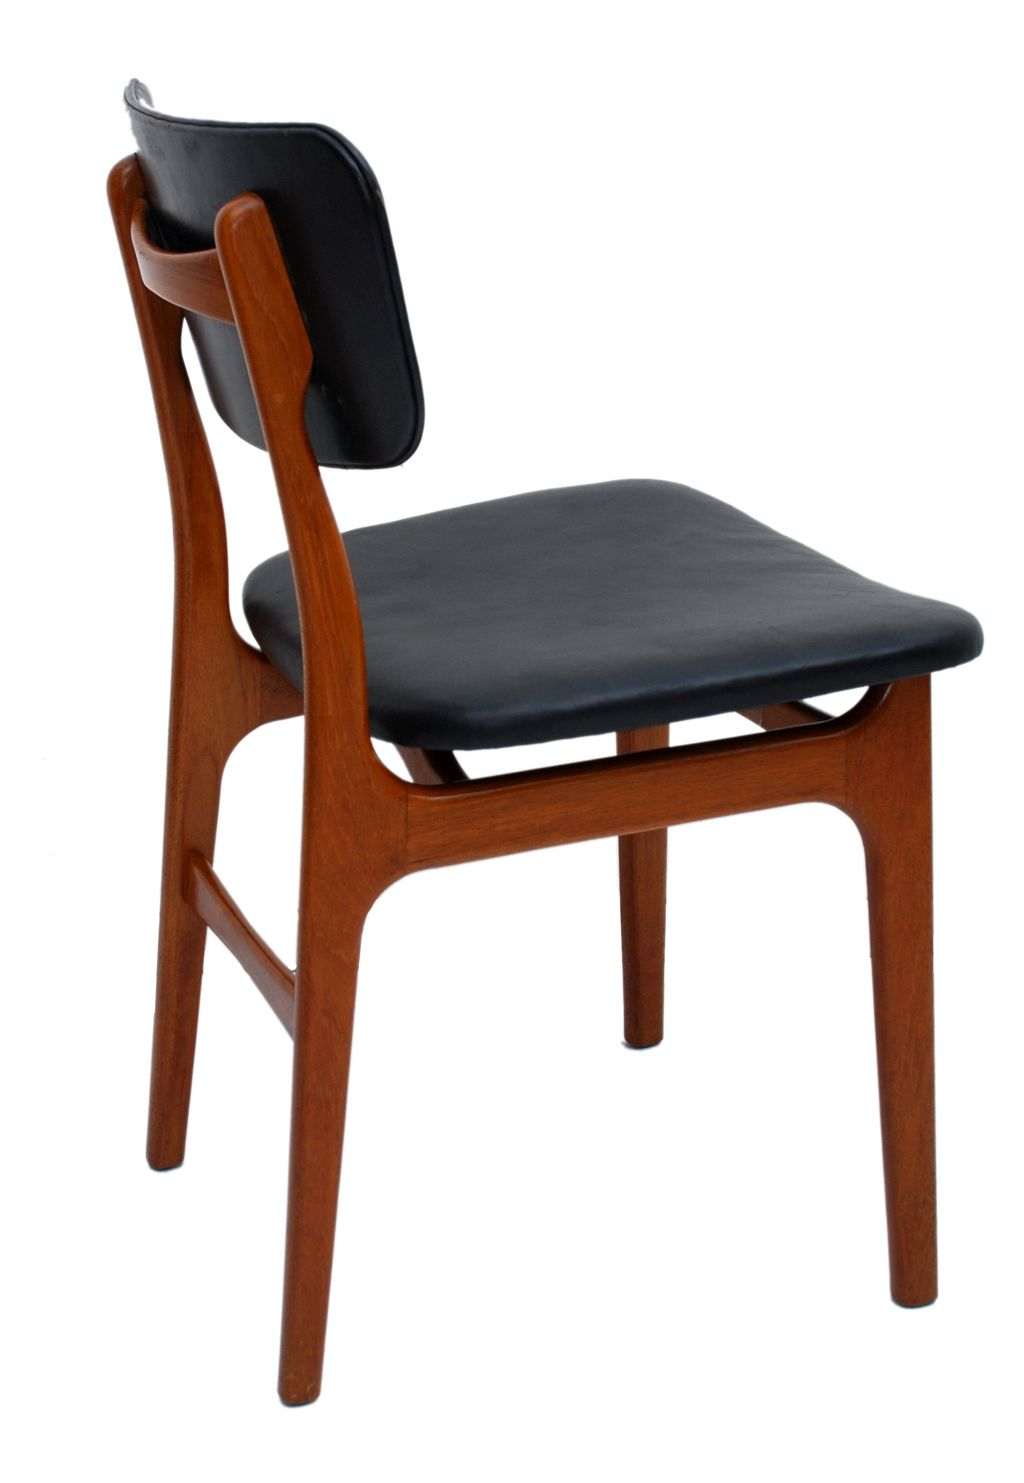 Admirable Exclusive Danish Modern Teak And Black Leather Dining Chair Uwap Interior Chair Design Uwaporg